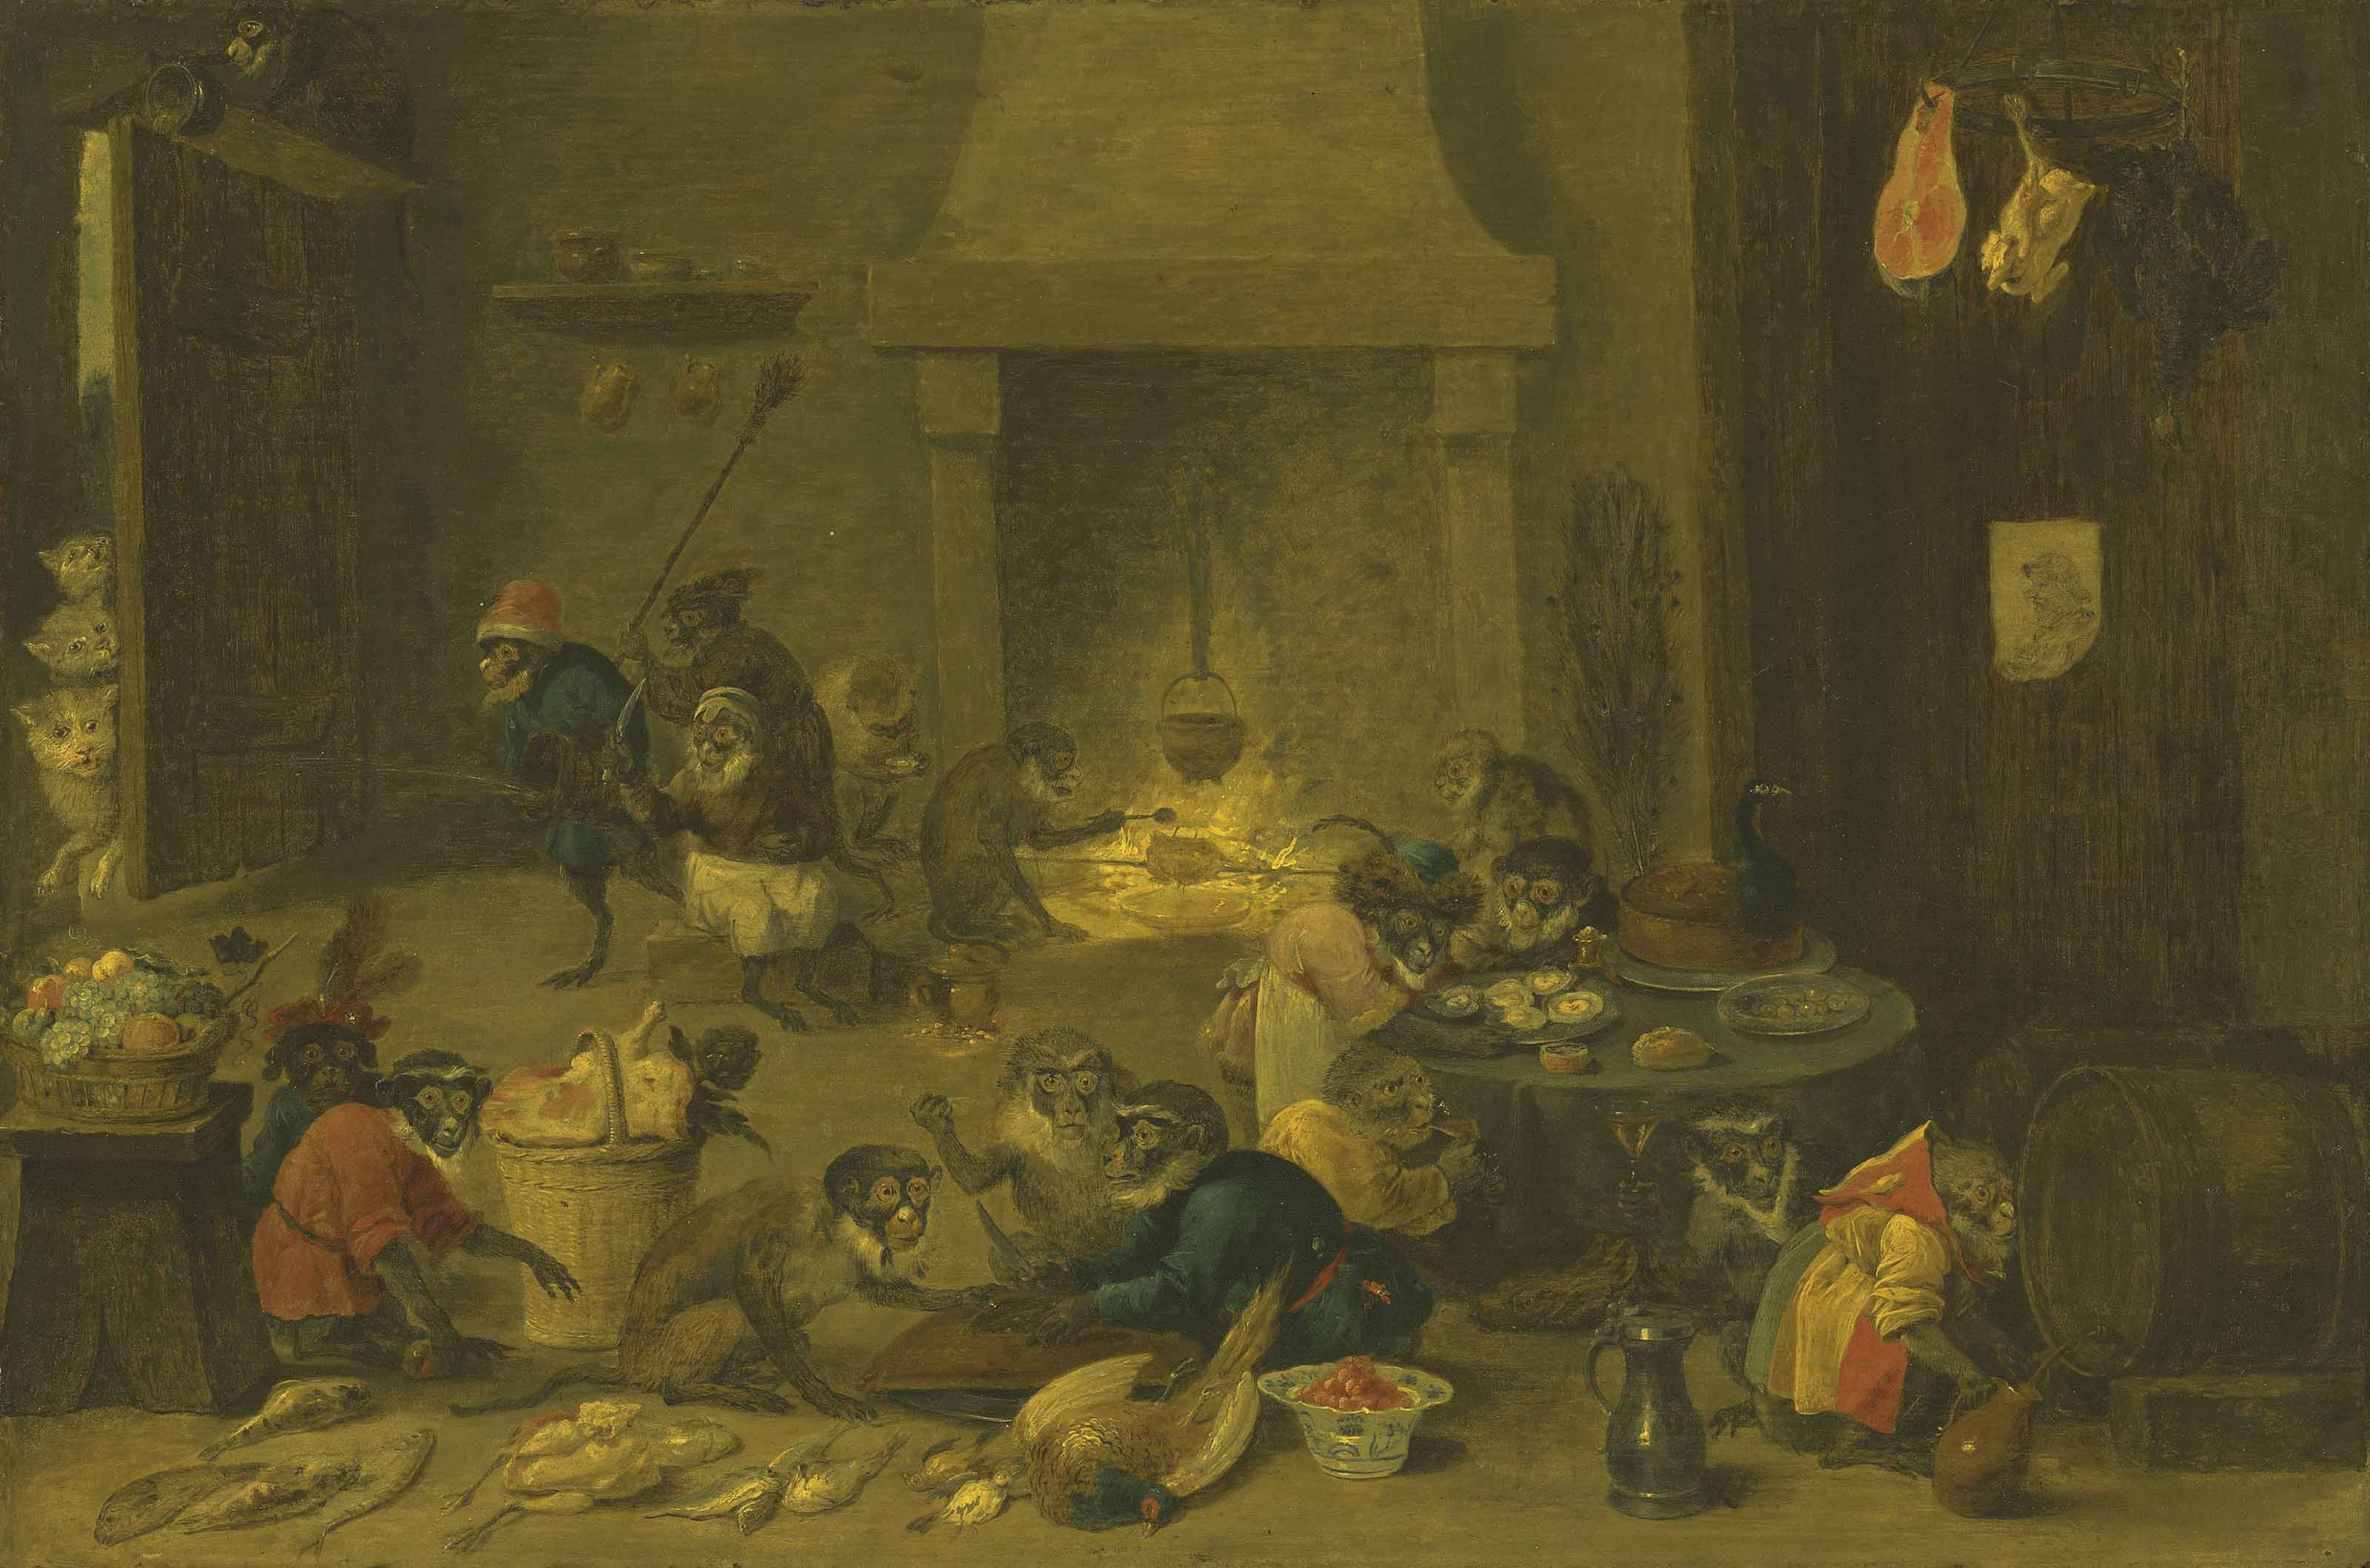 Monkeys cooking in a kitchen